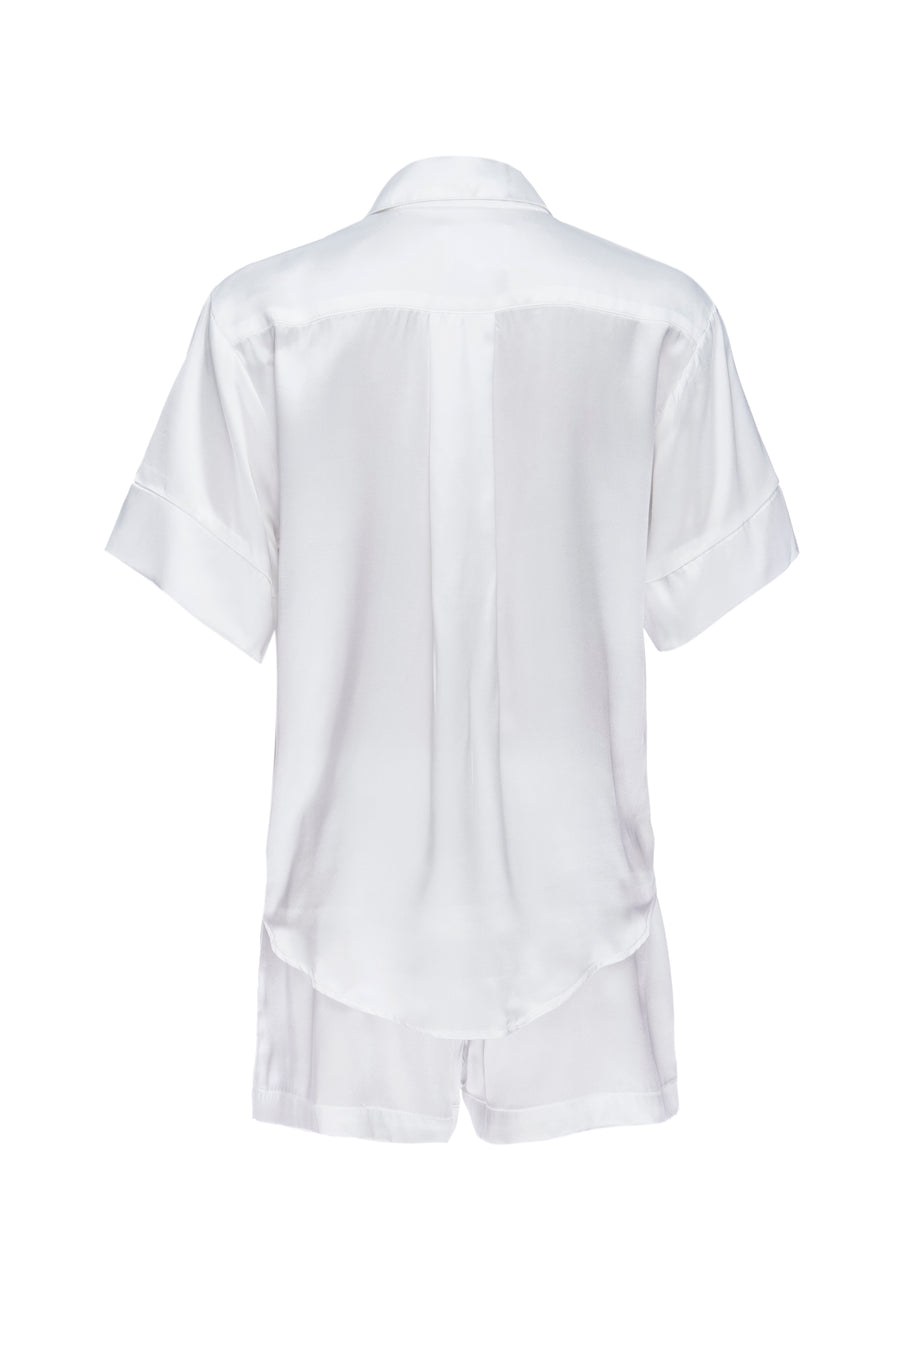 Silk Charmeuse Short-Sleeved Top: Ivory